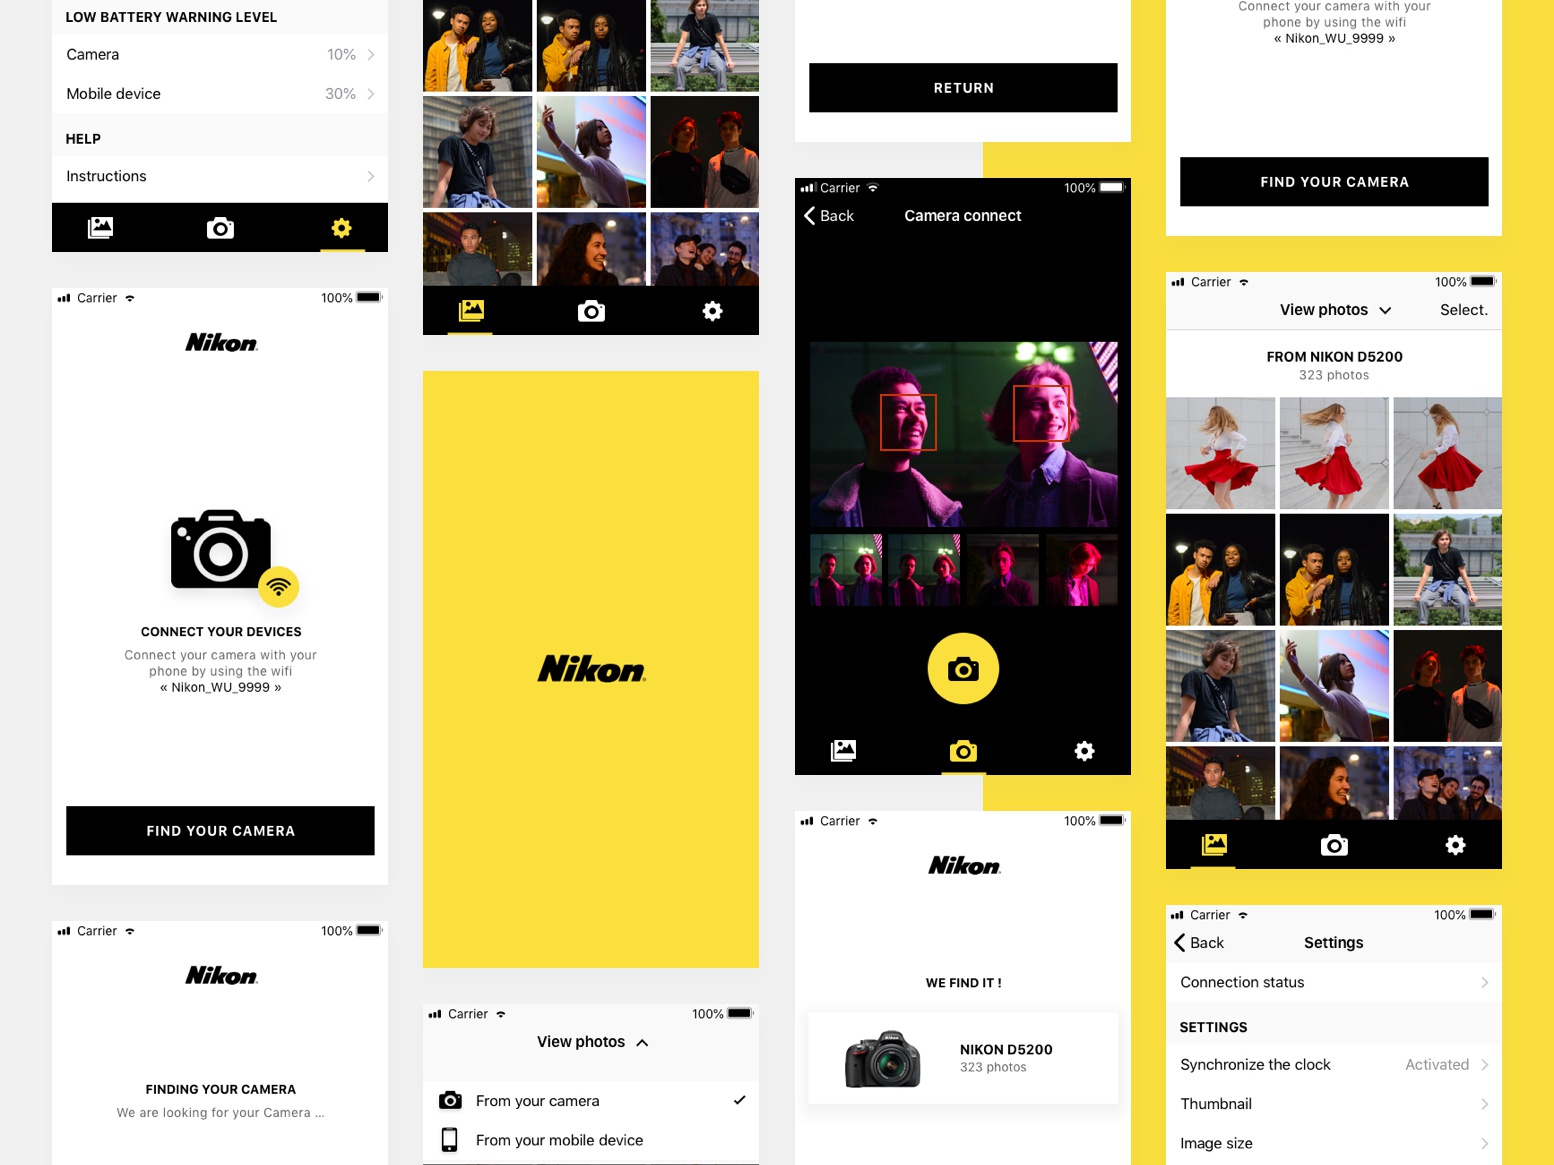 Nikon wmu connect redesign mobile app design wmu application android white yellow connect camera dslr app nikon wmu ios app mobile app nikon app nikon camera connect